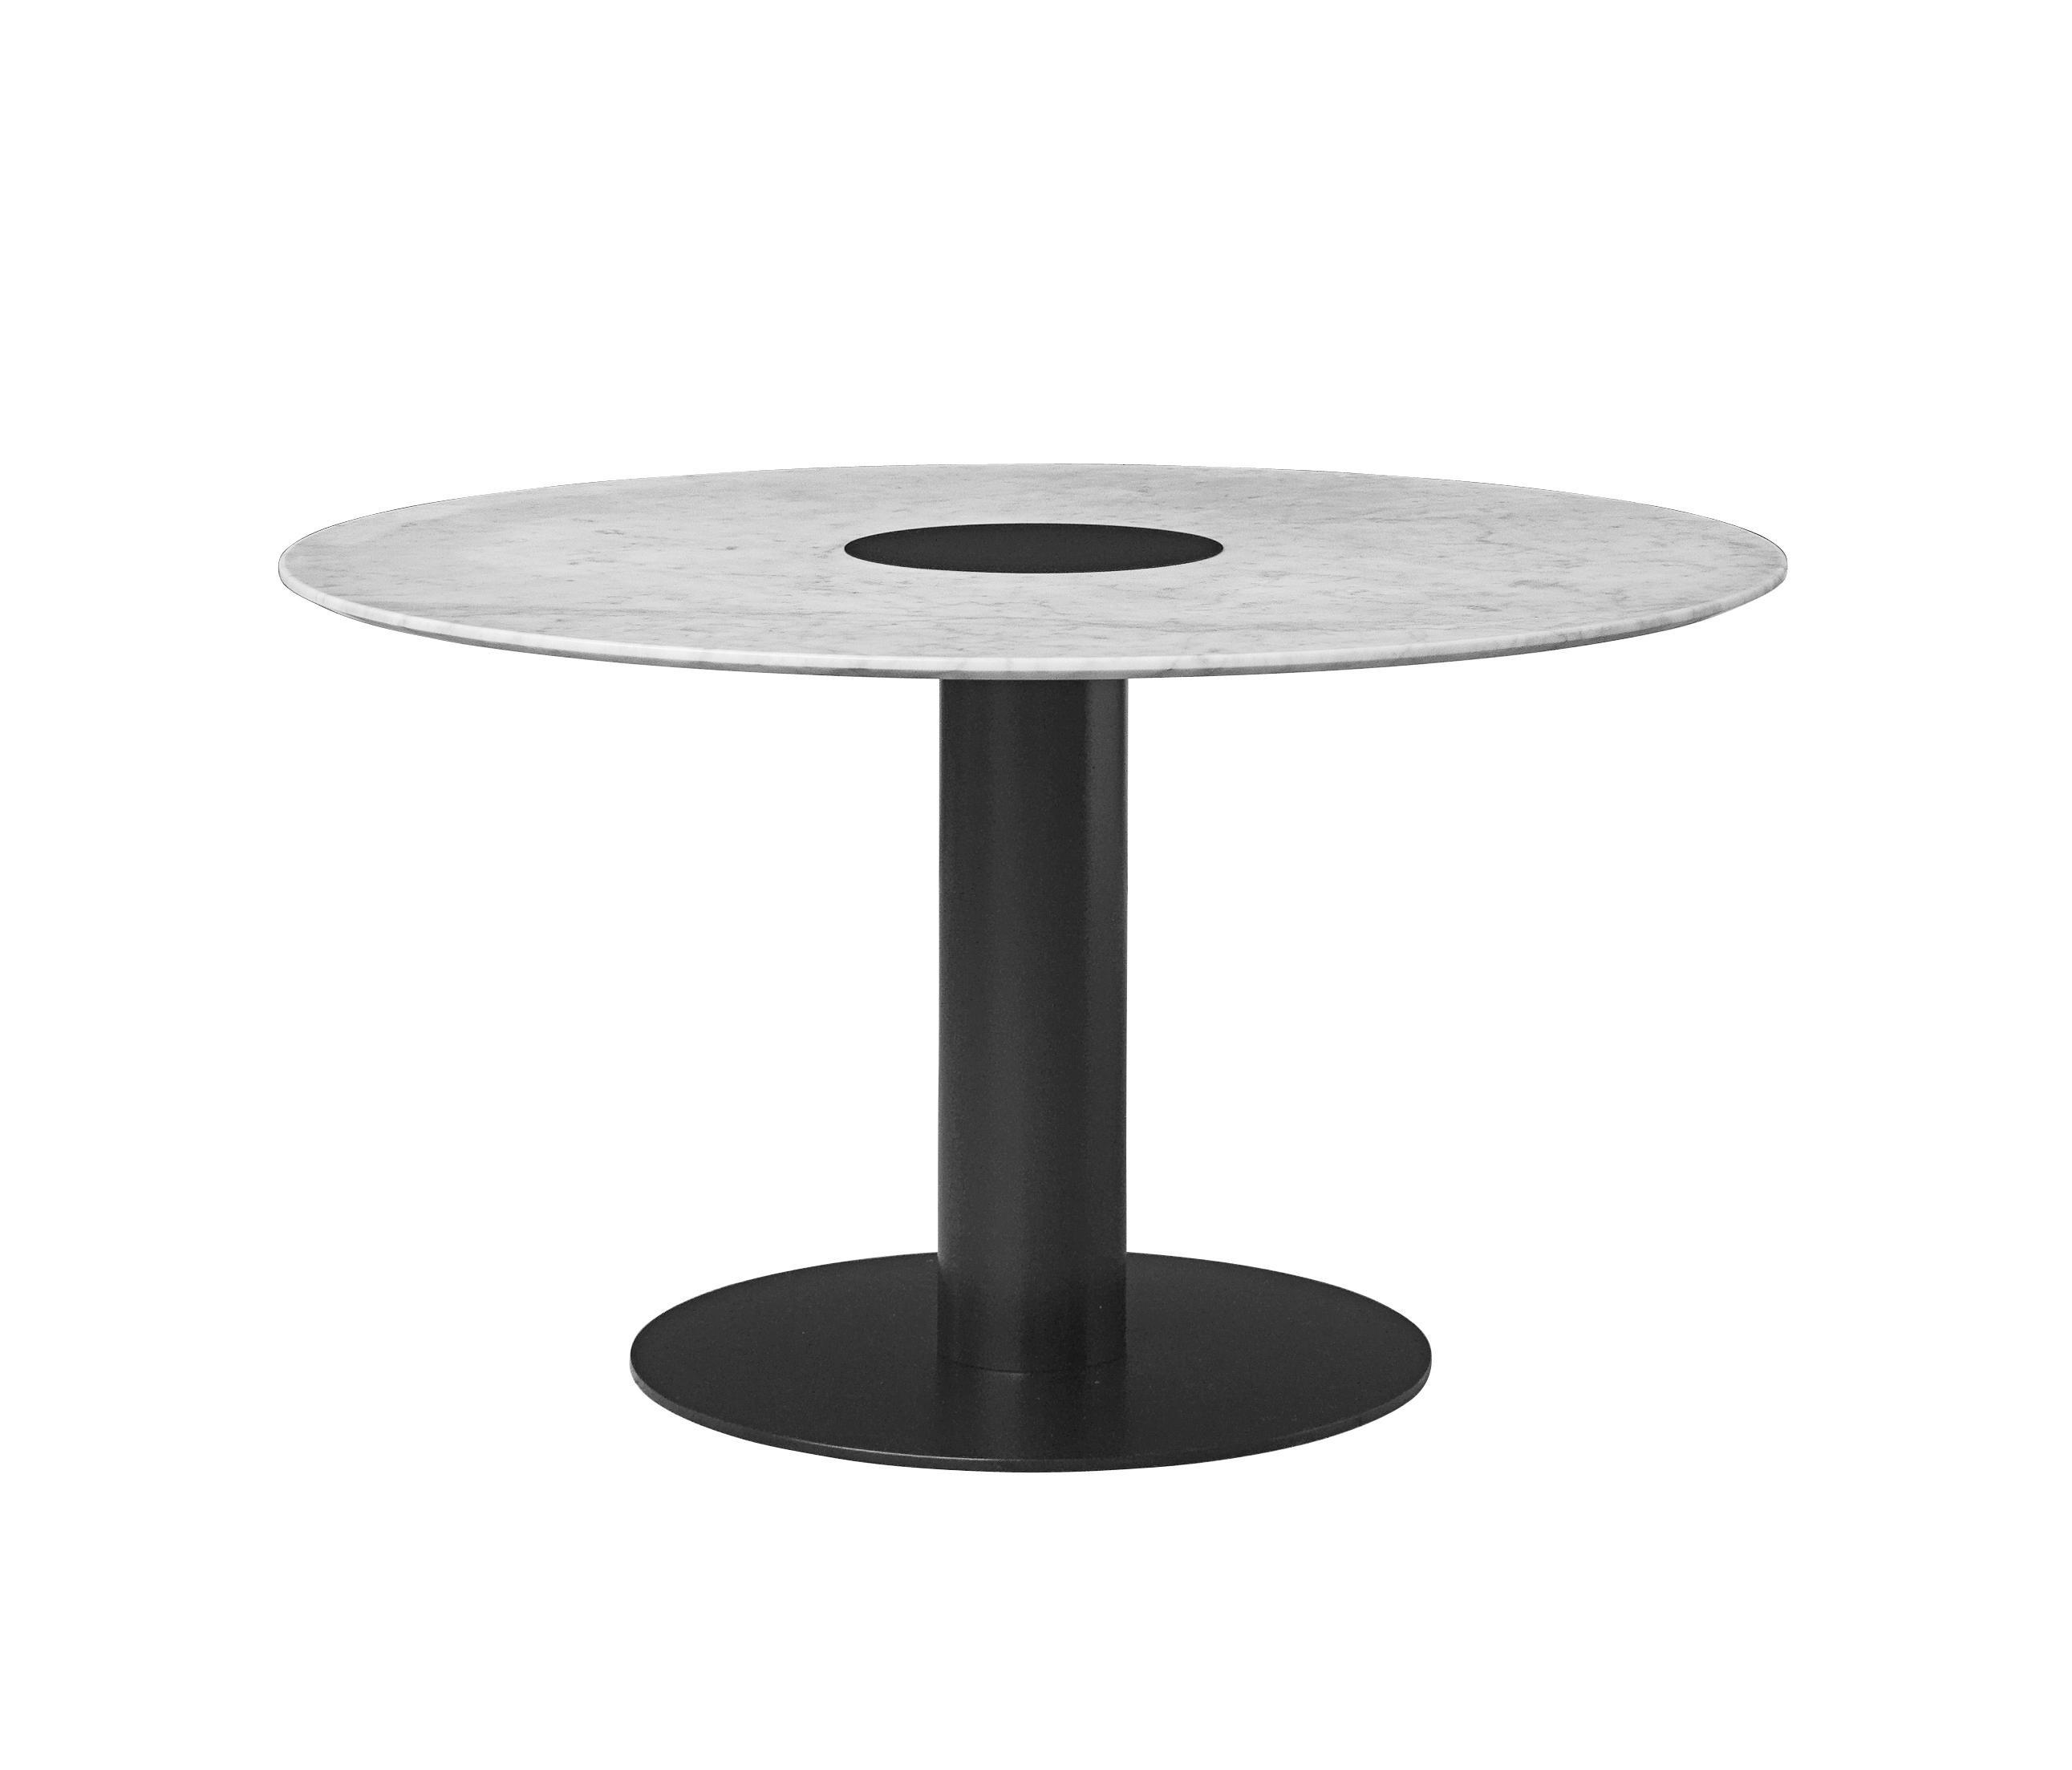 gubi table 2 0 restaurant tables by gubi architonic. Black Bedroom Furniture Sets. Home Design Ideas